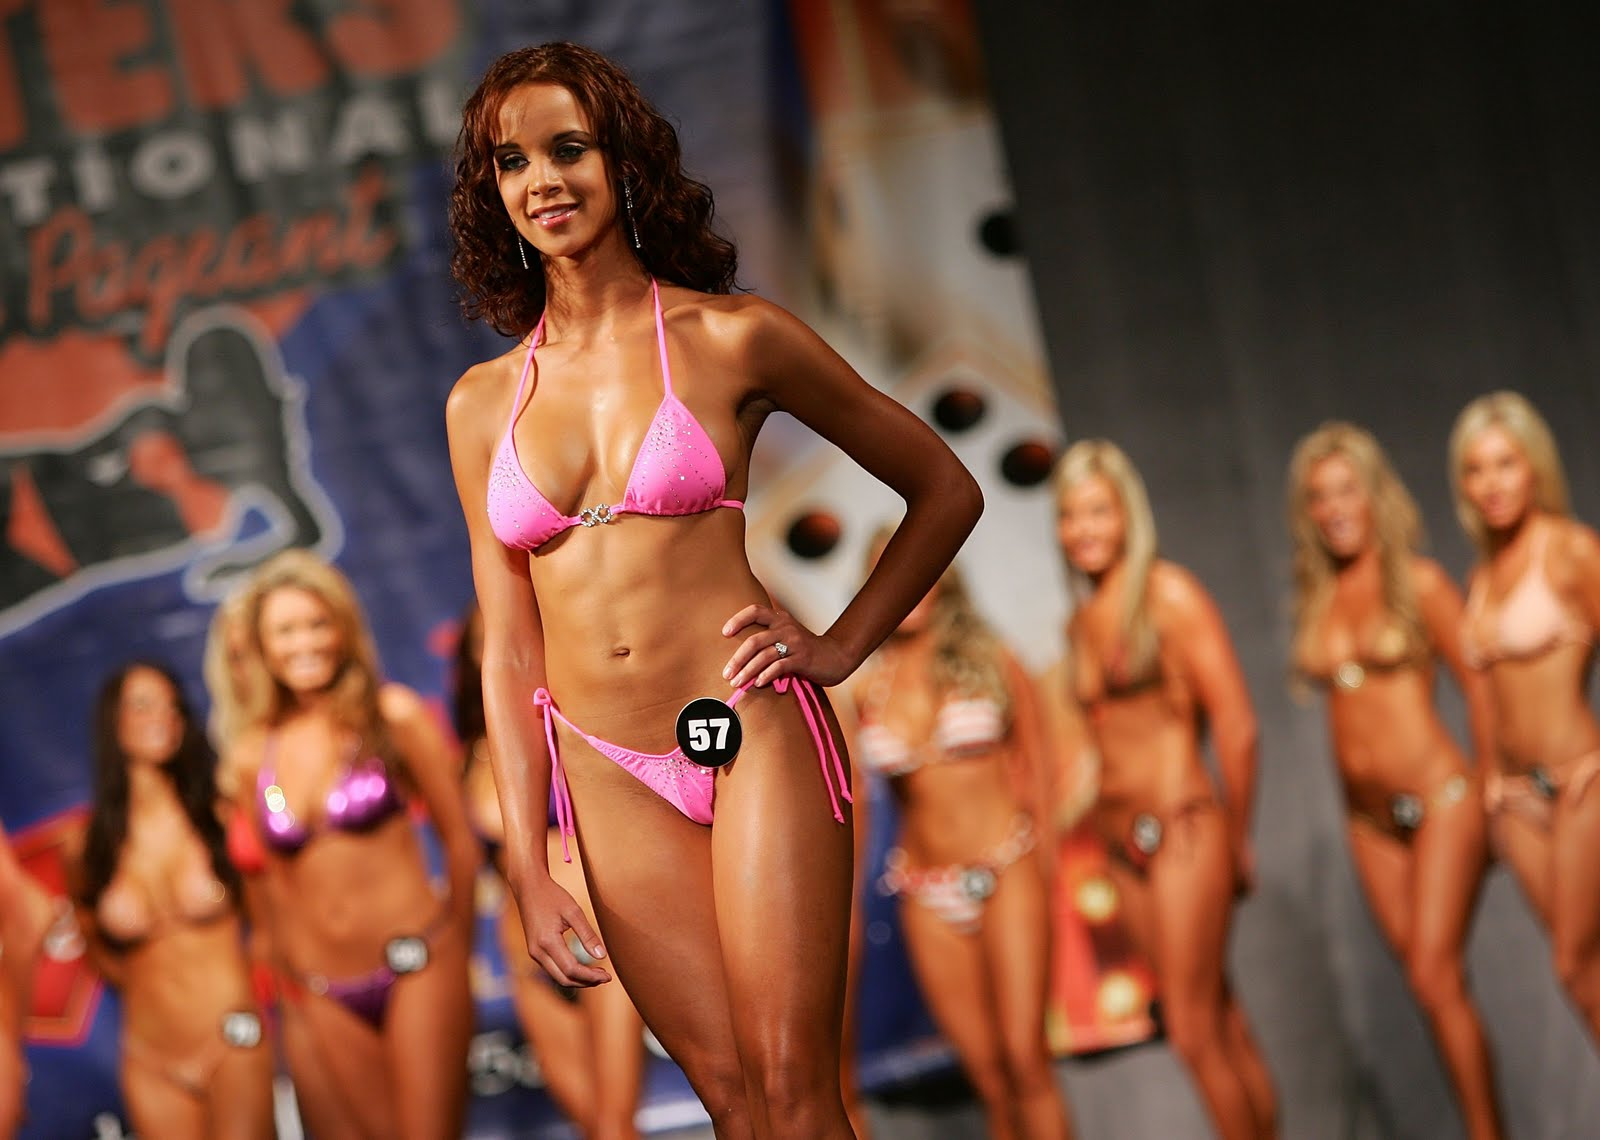 girls pageant Hooters swimsuit